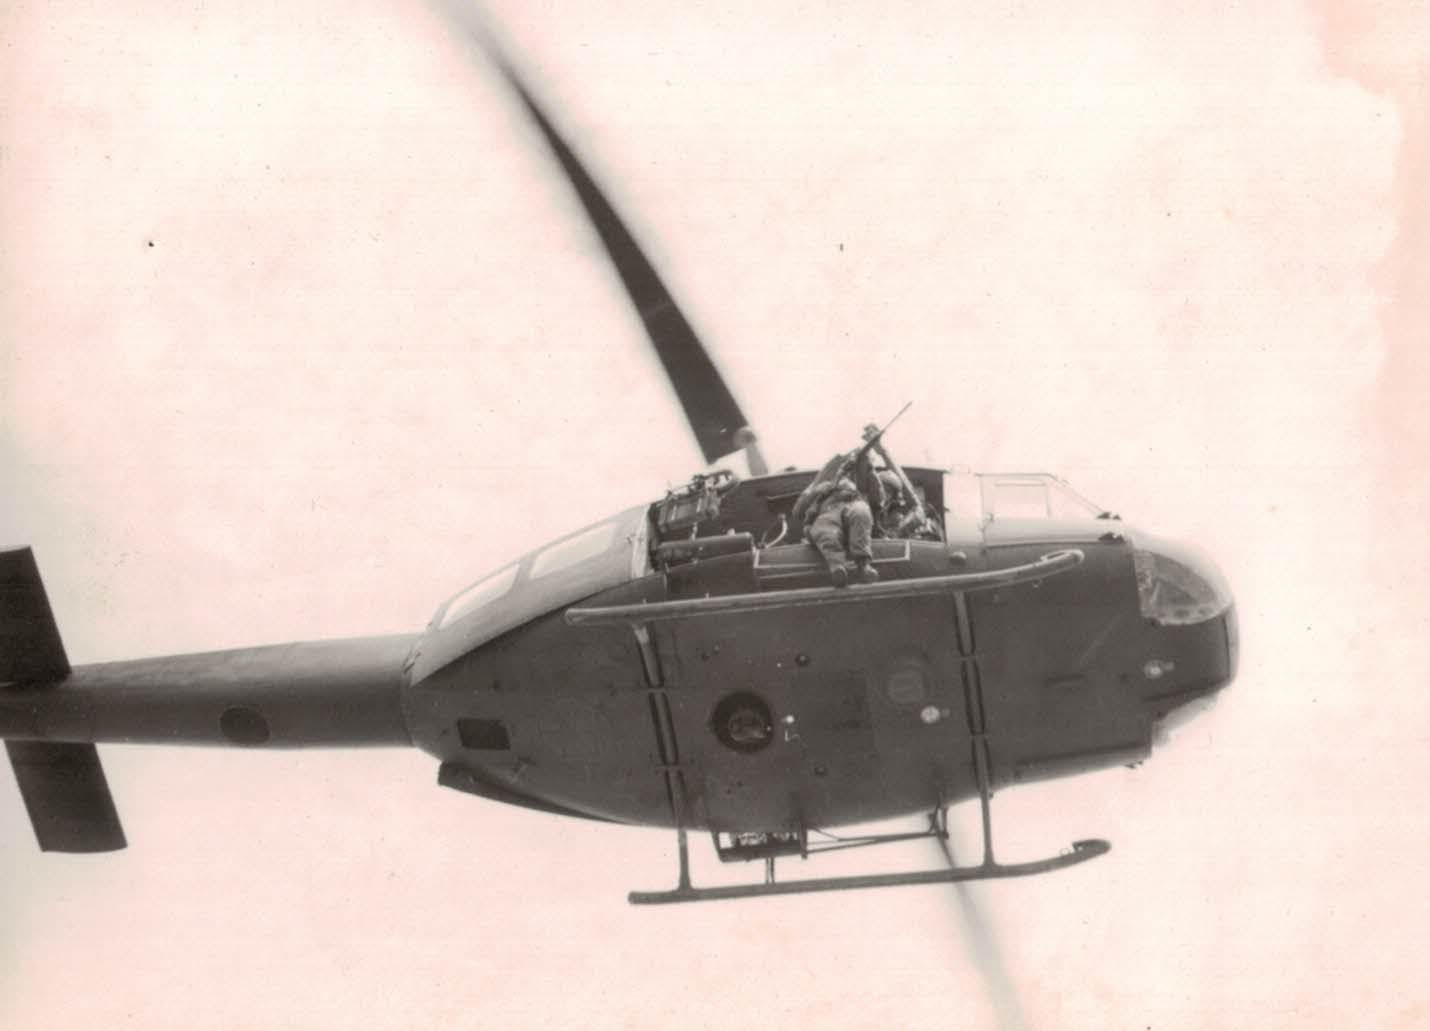 An Iroquois helicopter participating in practice of medical evacuation (Dustoff).  This happened on the SQN helipad.